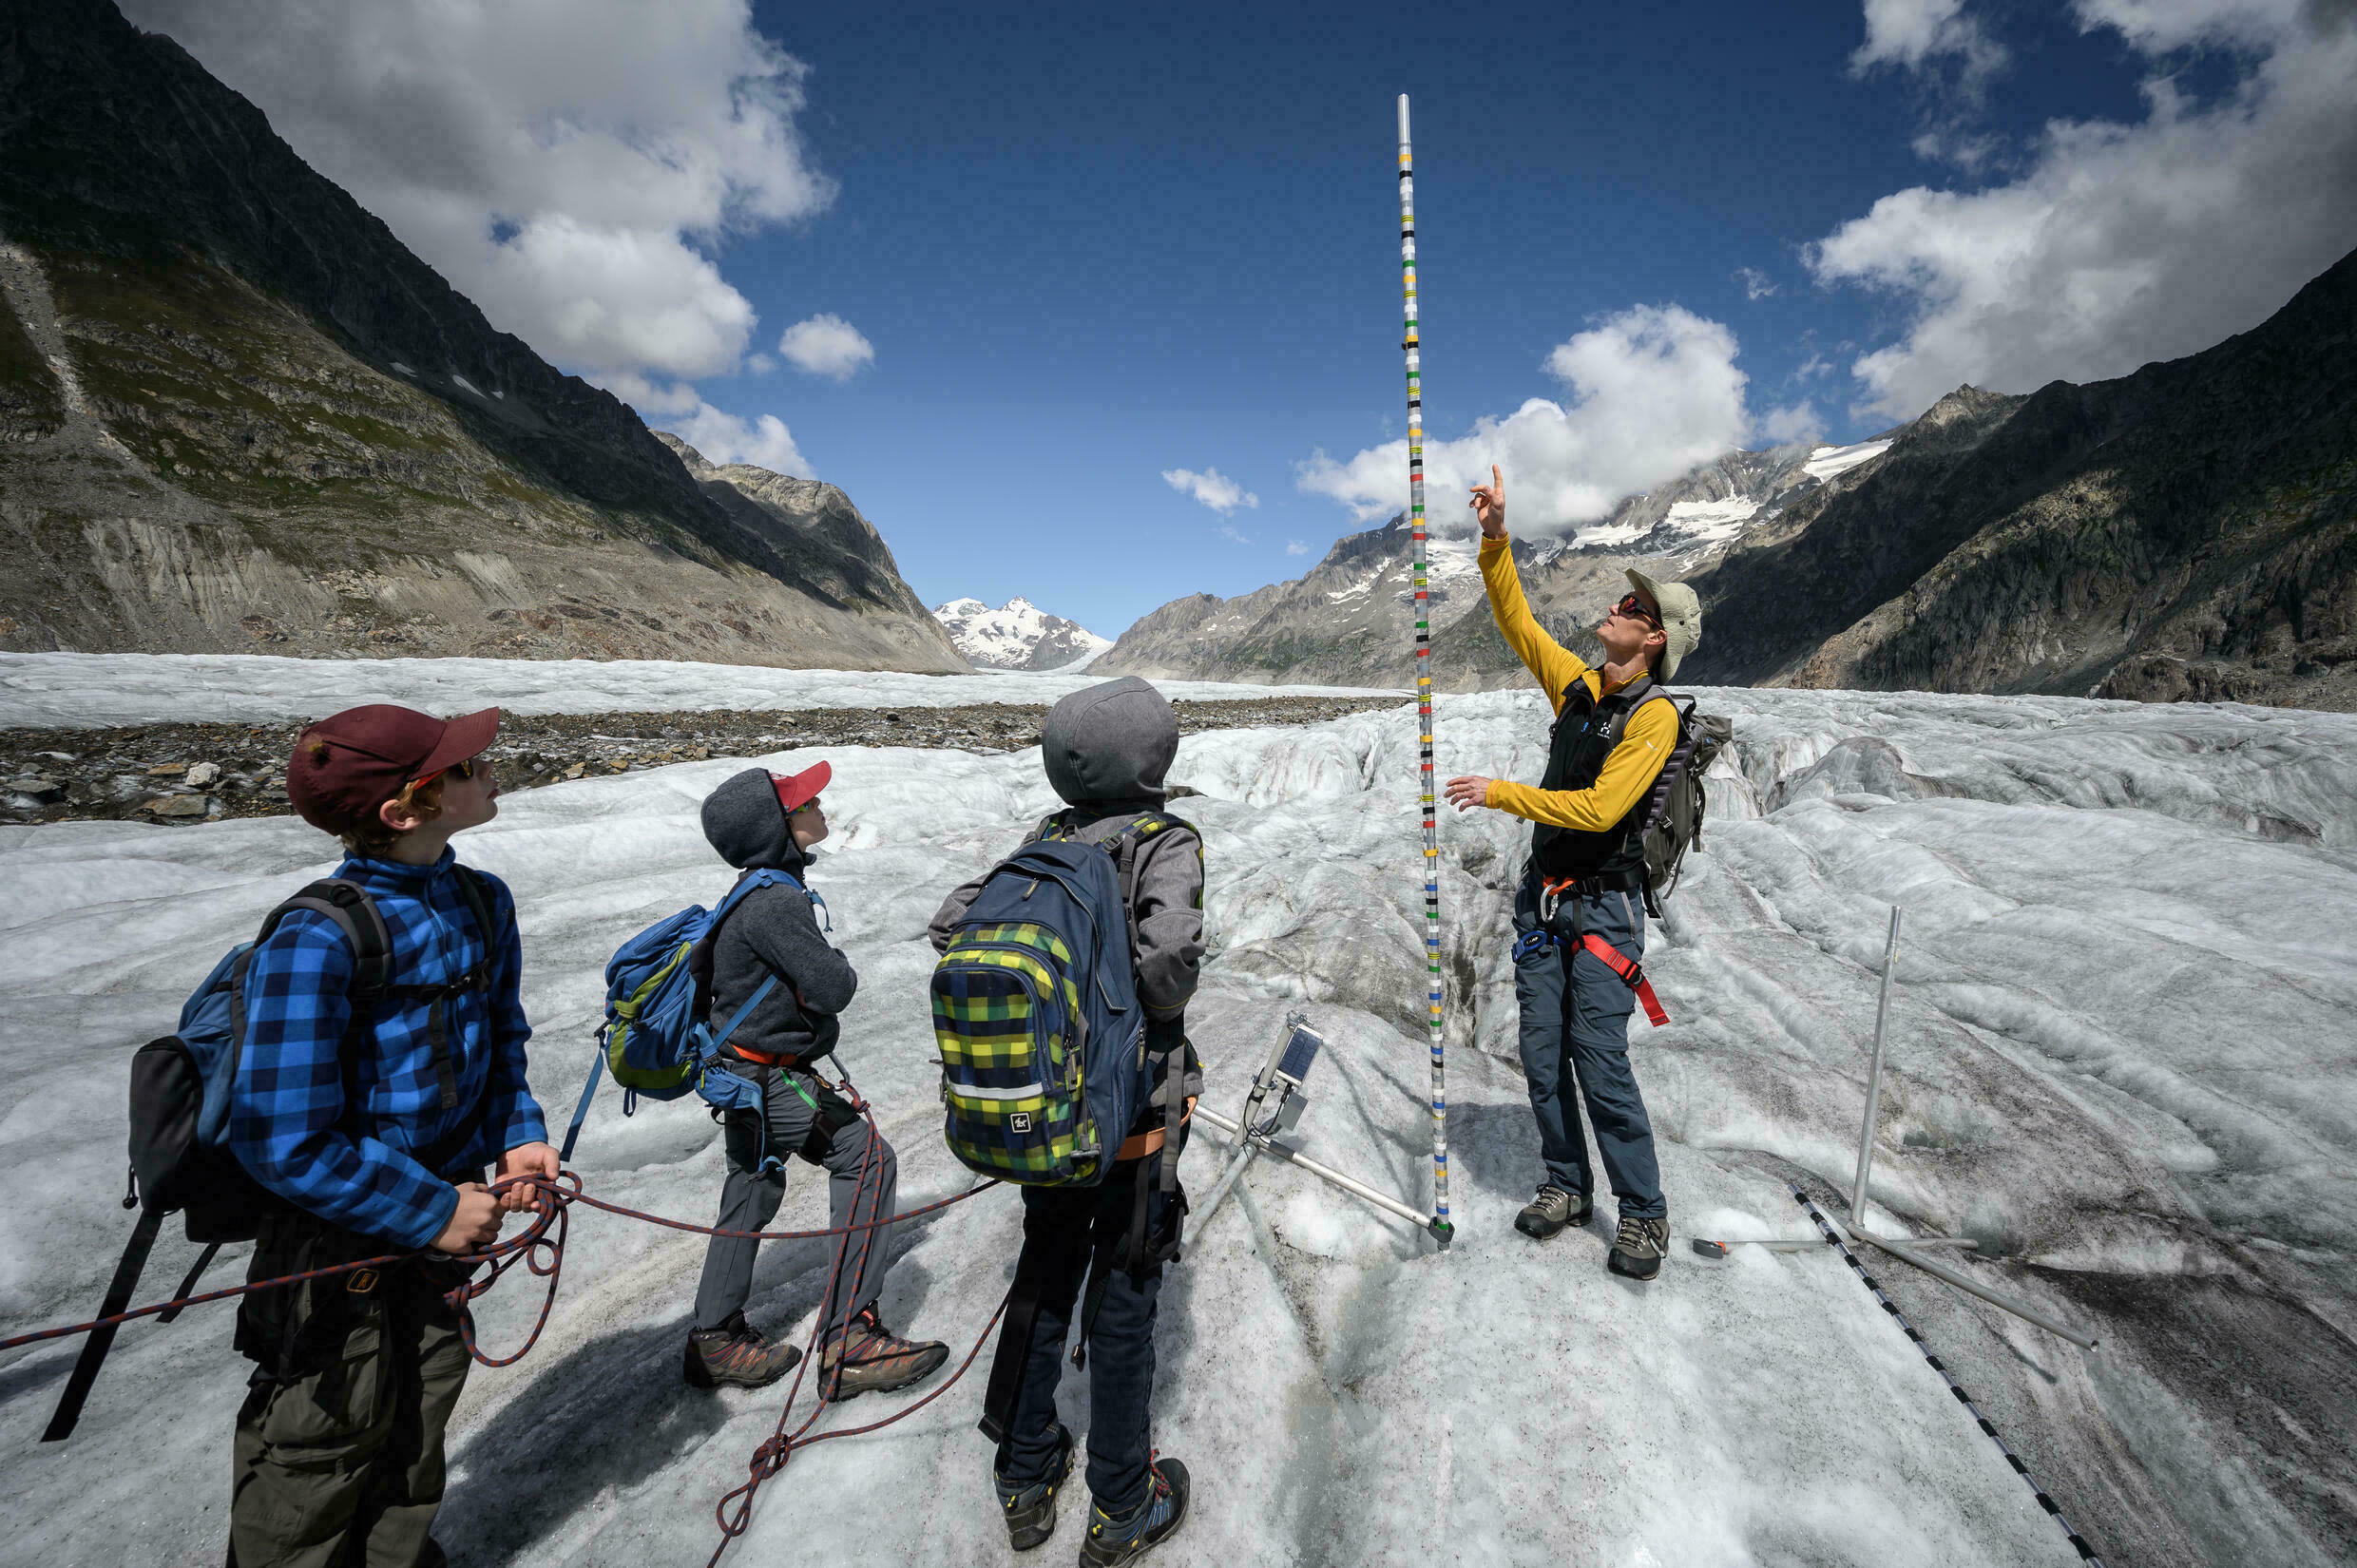 In the past decade, the glacier's 80 square kilometers of ice and rock has lost 1.5 meters in thickness every year.